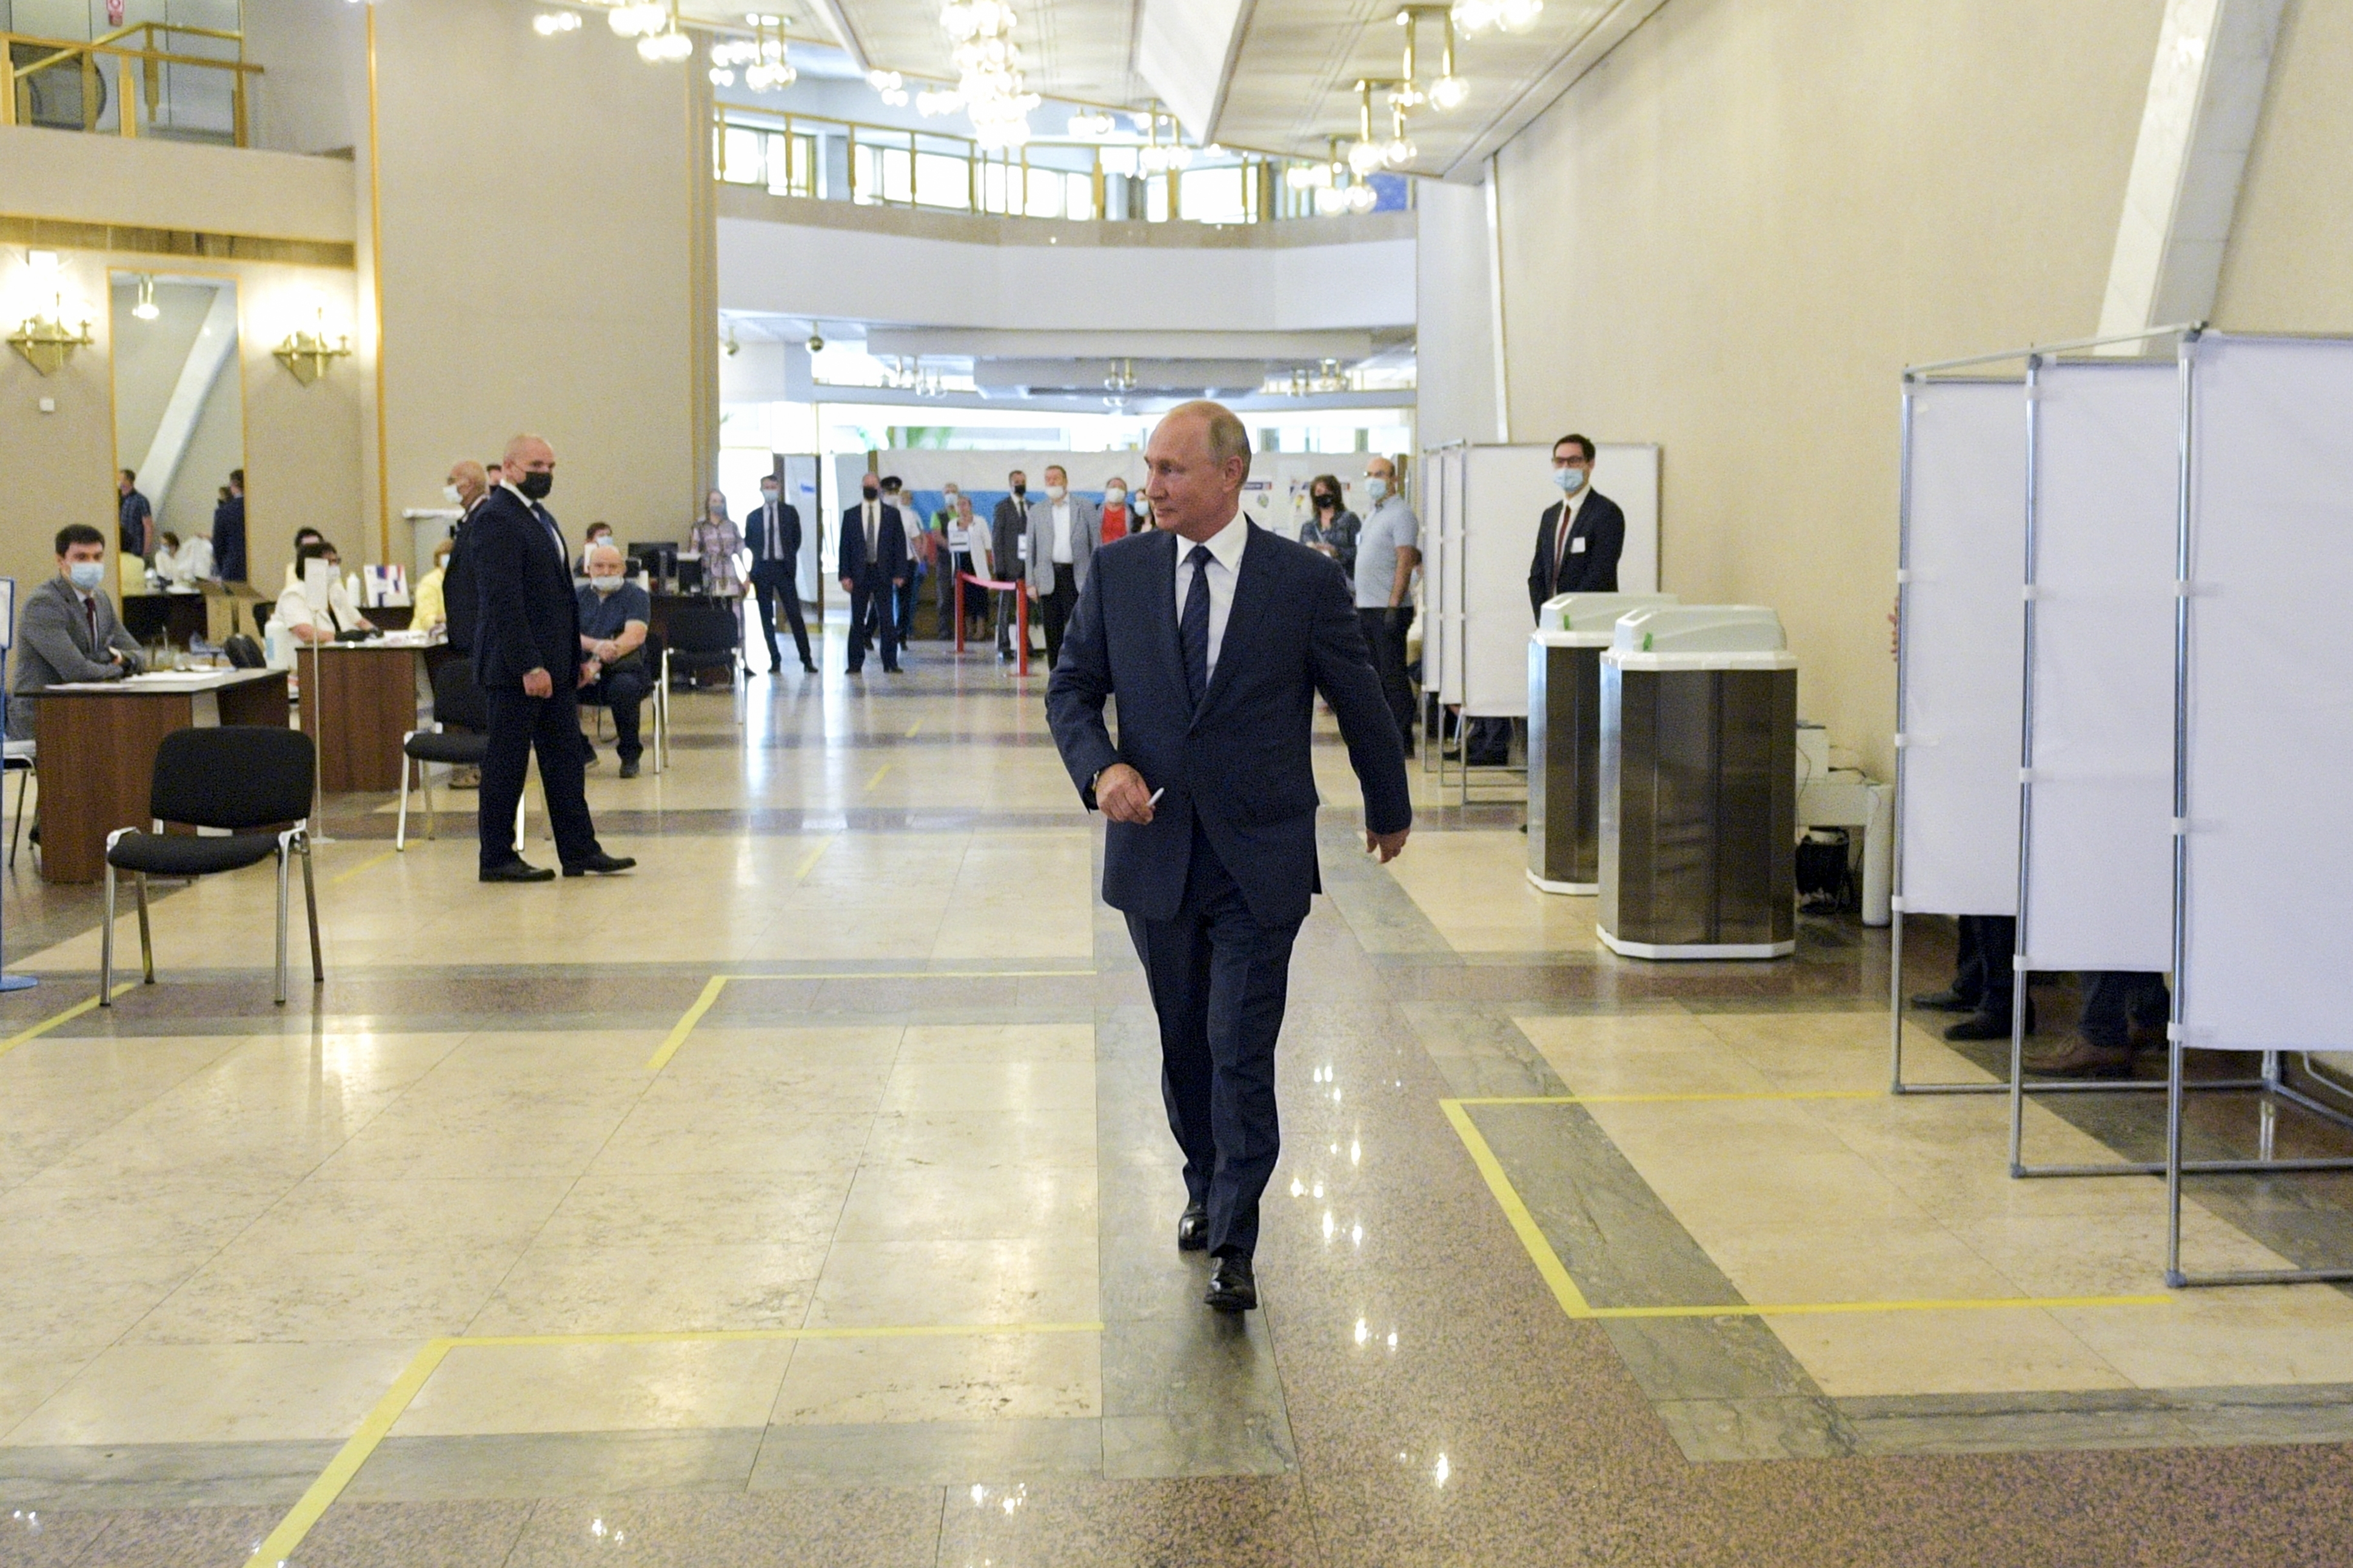 Putin S Term Limit Win Suggests Stagnation Not Strength The Washington Post